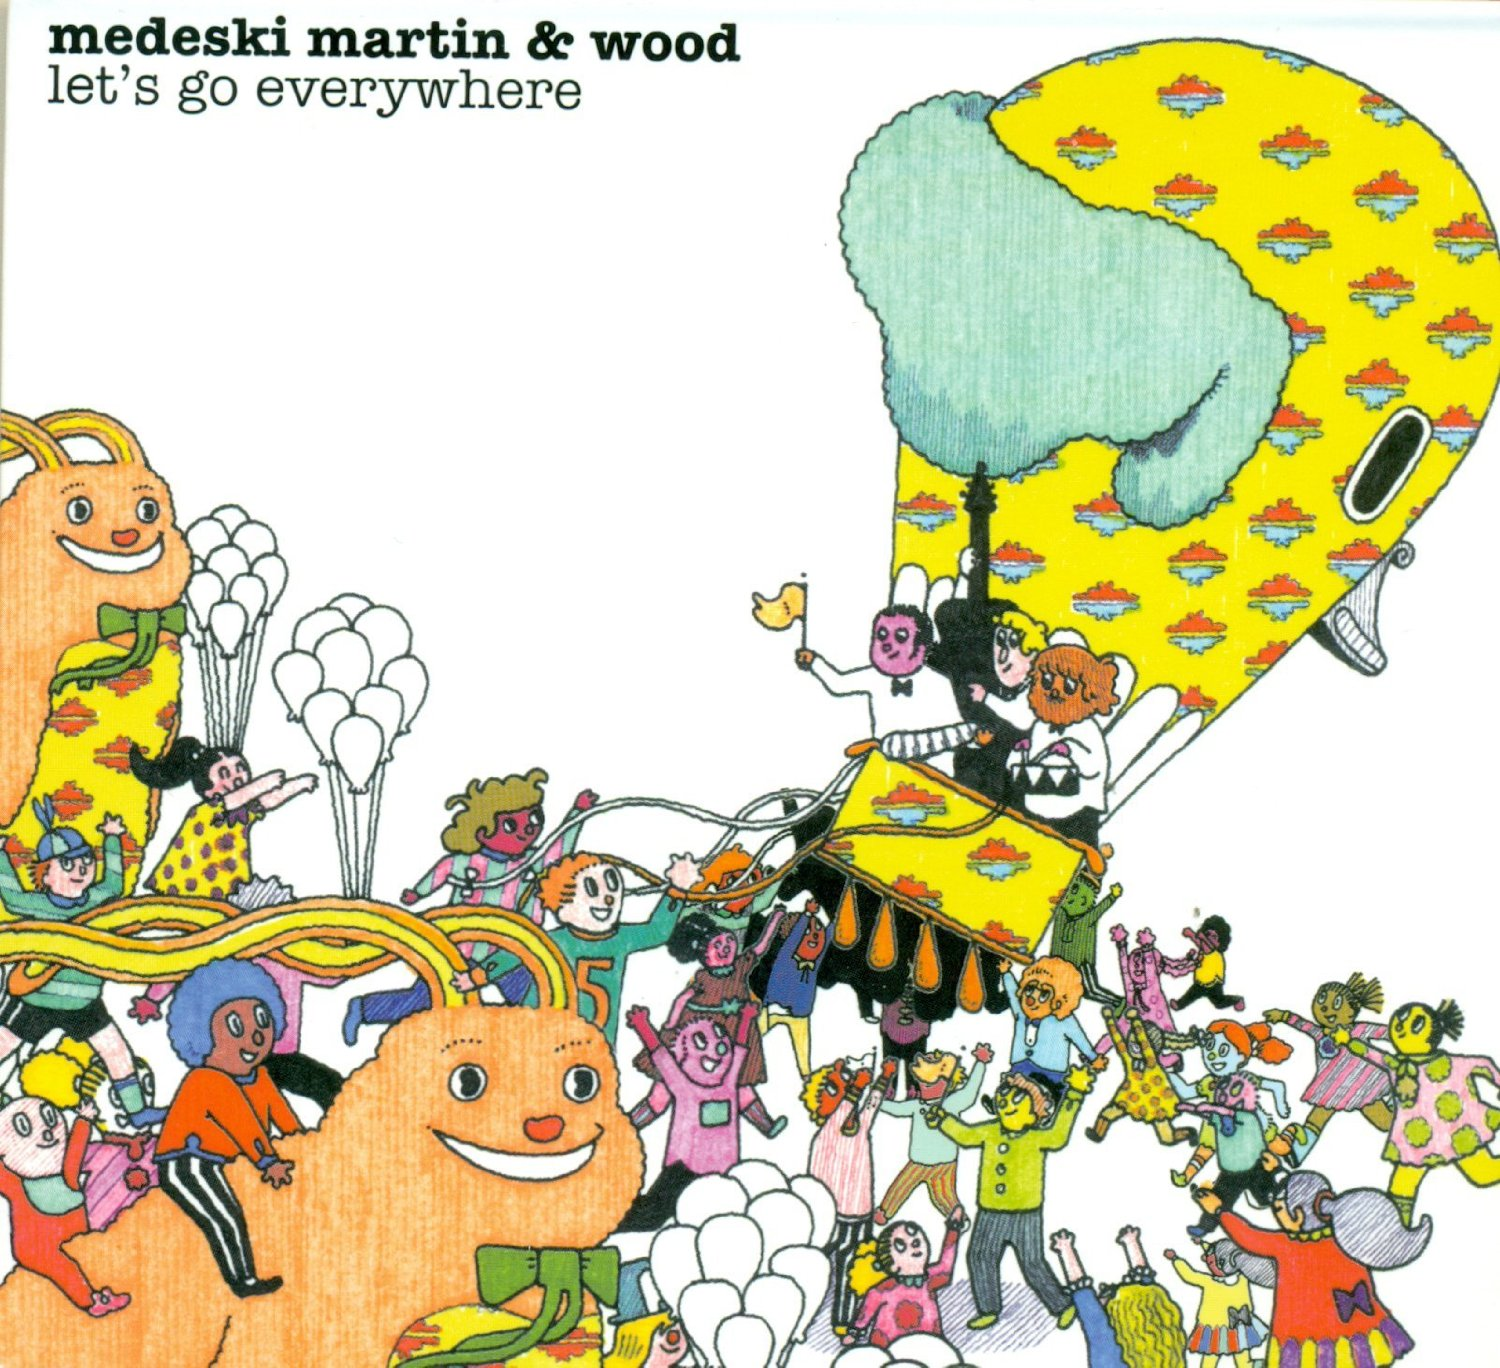 Medeski Martin & Wood's Let's Go Everywhere is out now.Medeski Martin & Wood's Let's Go Everywhere is out now.